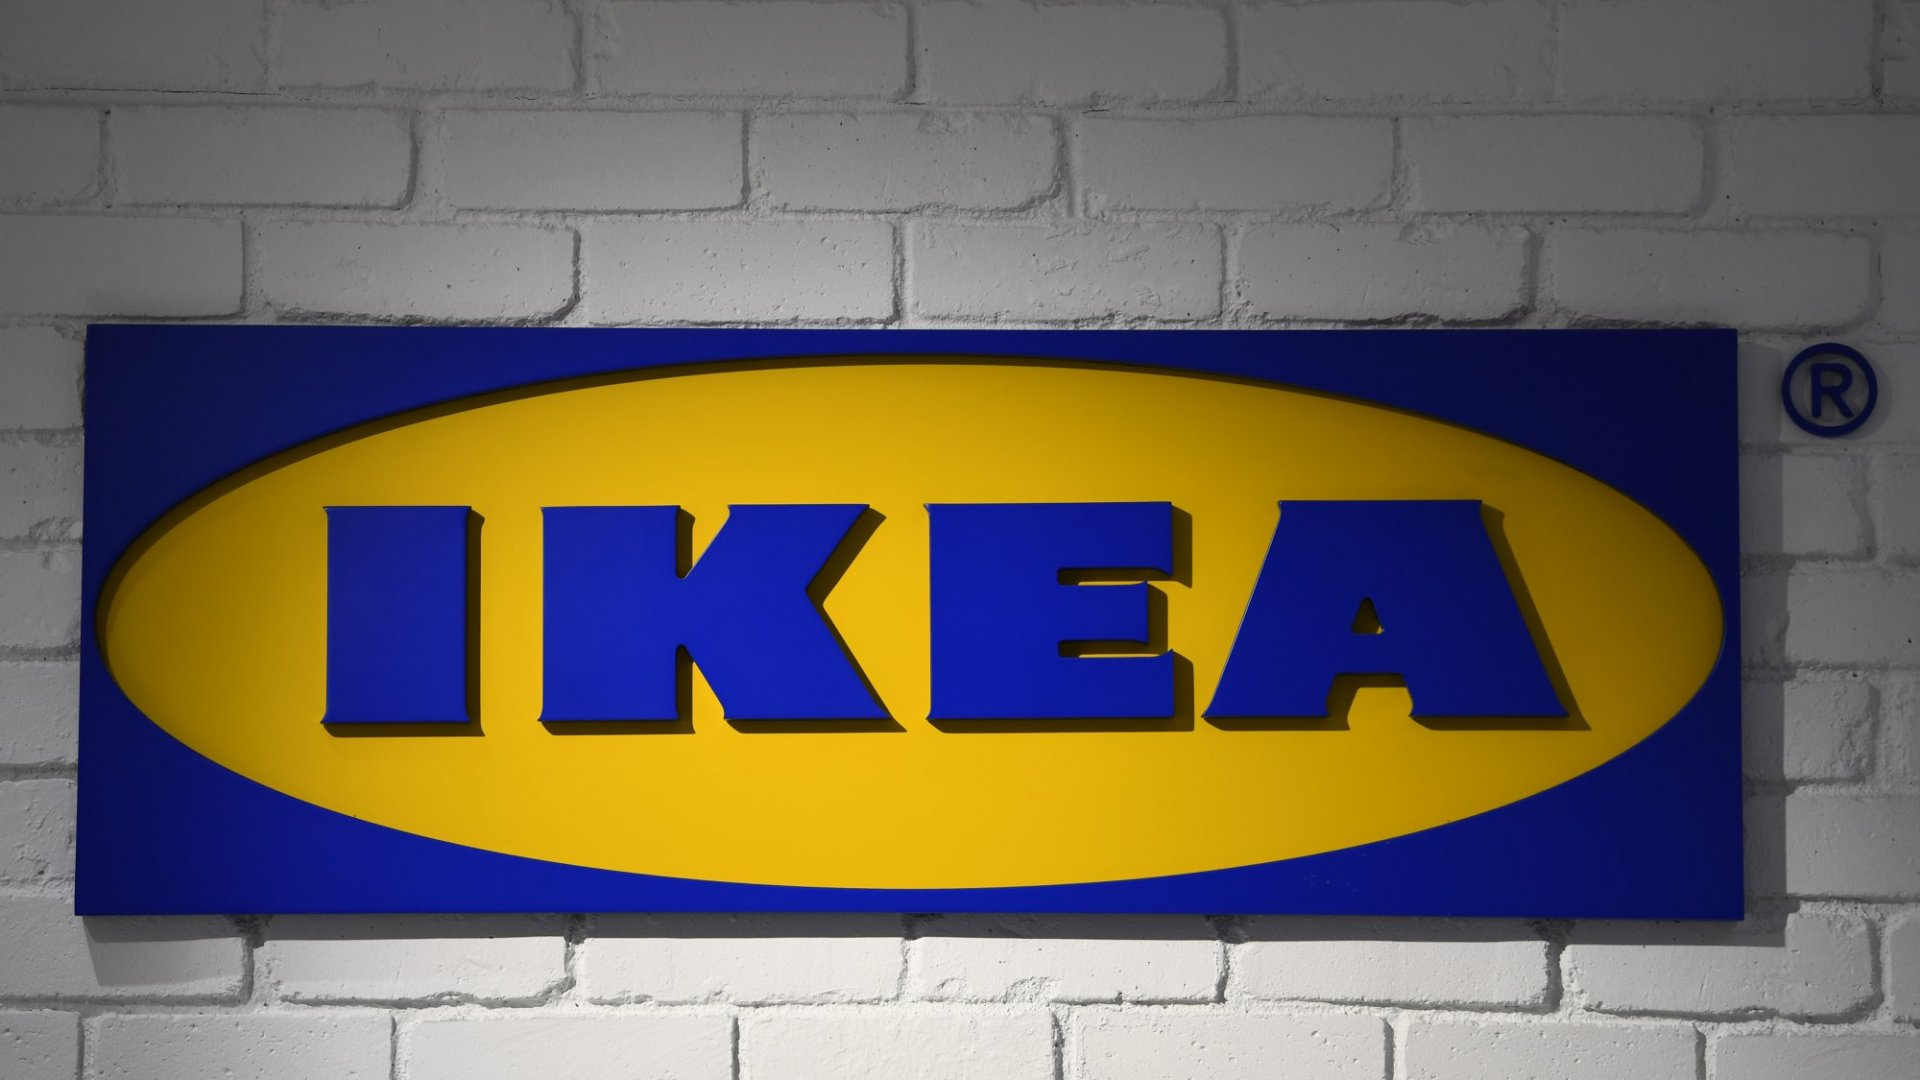 Ikea Just Rolled Out Some Truly Radical Changes That Will Change Literally Everything You Think About Ikea. (It All Began Monday)